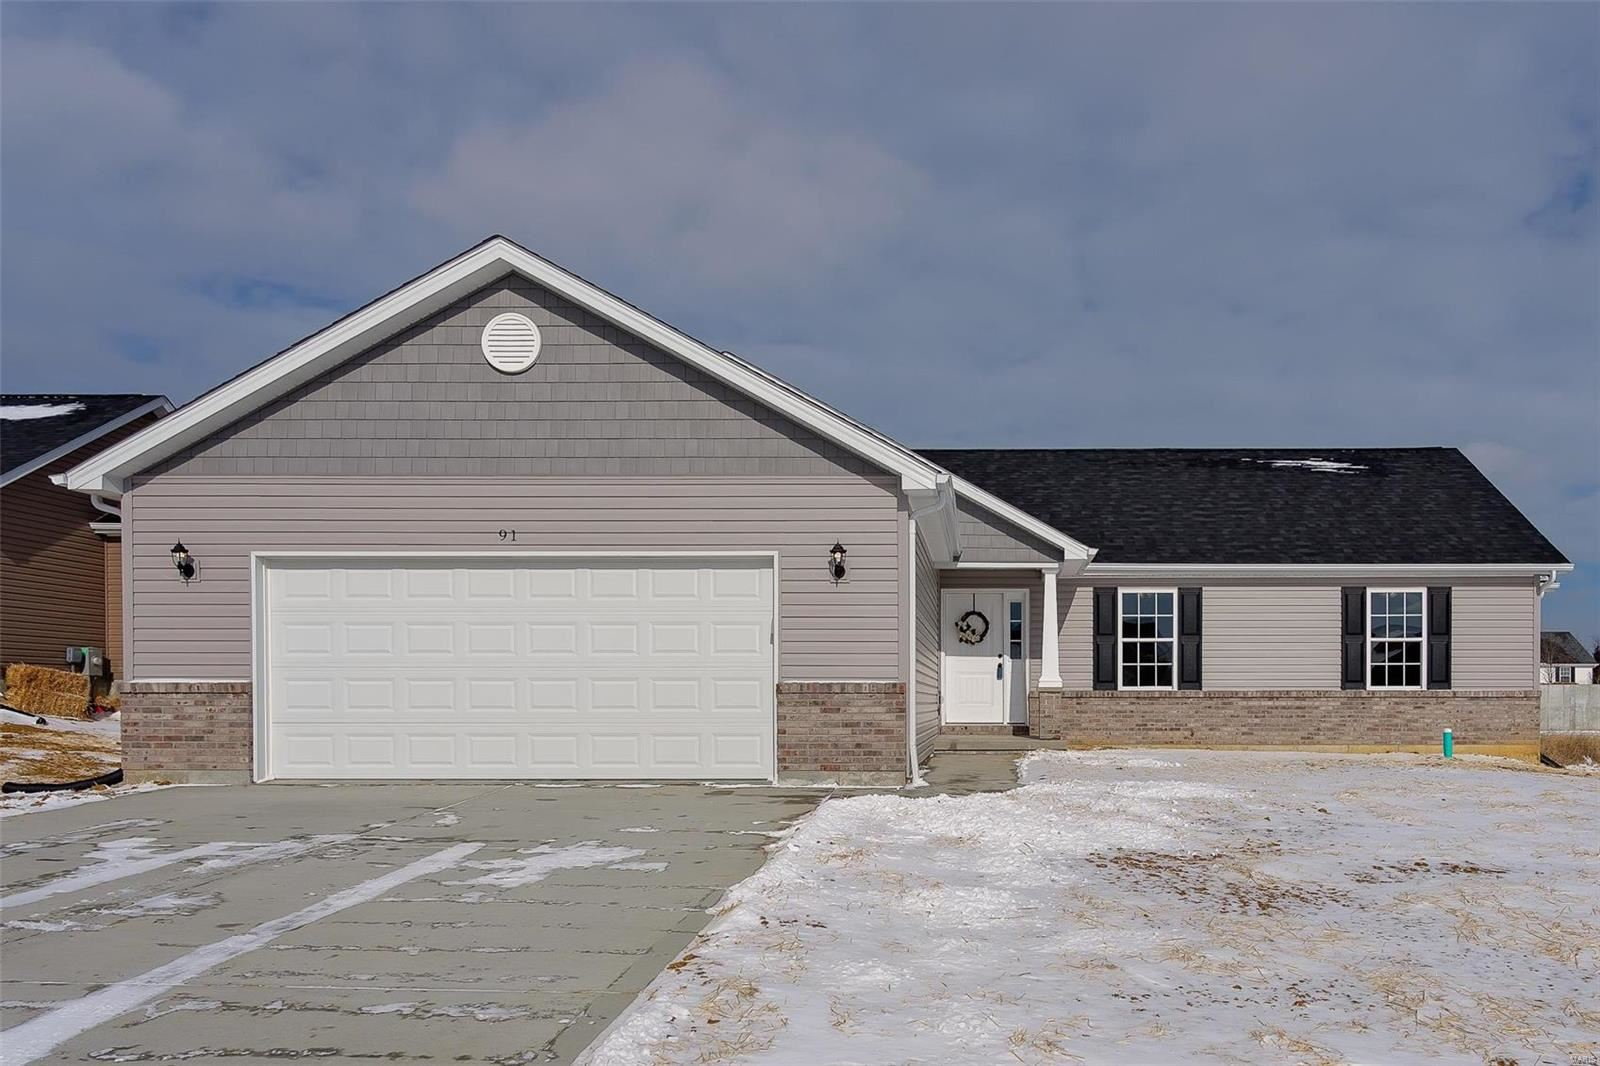 177 Rockport Drive, Troy, MO 63379 - MLS#: 21011639